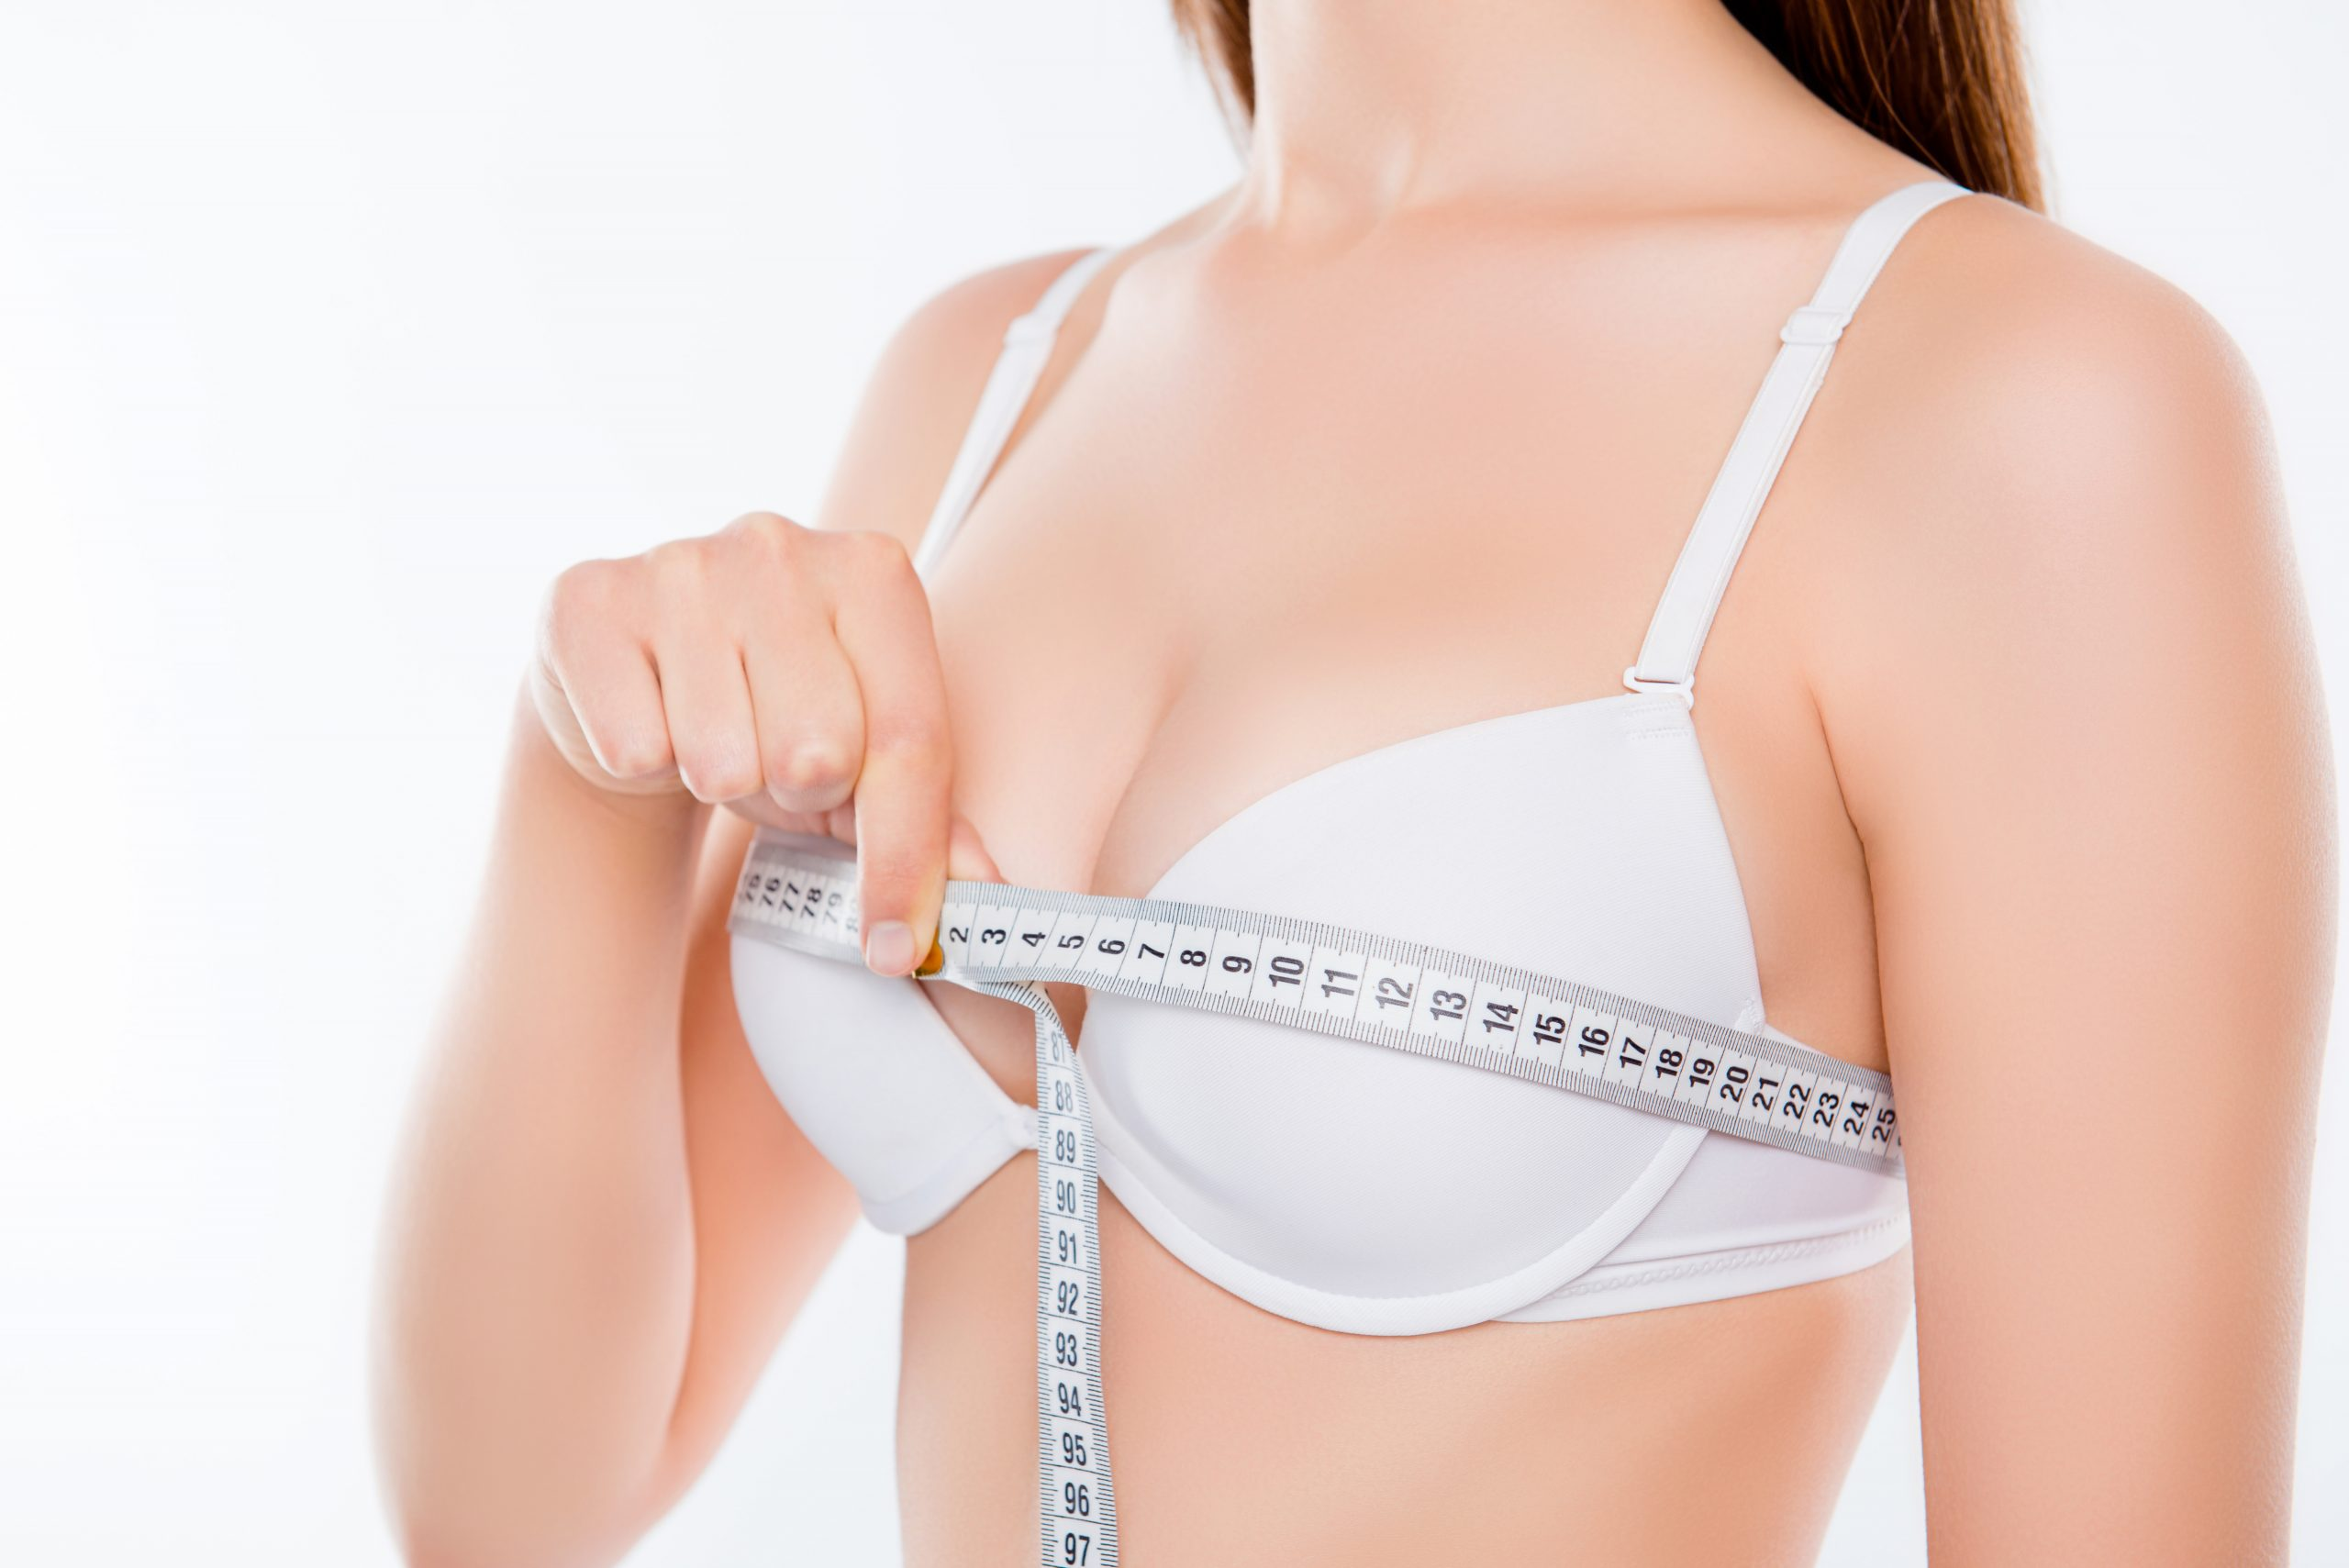 February 2020 Procedure of the Month: 3 Tips When Considering Breast Surgery